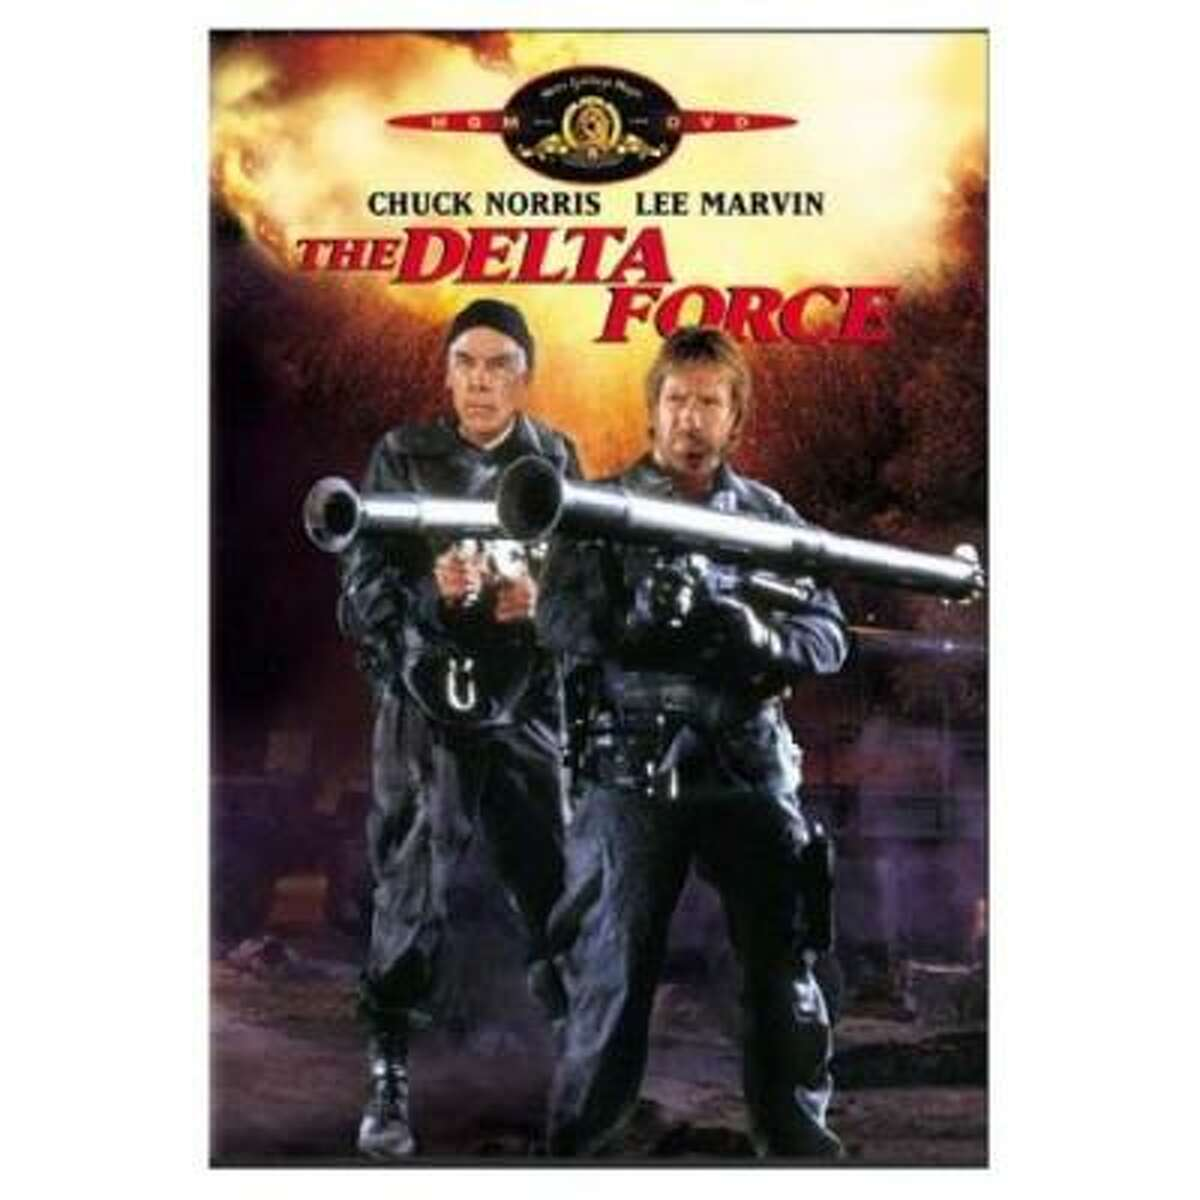 The Delta Force (1986) Tagline: They don't negotiate with terrorists... they blow them away!